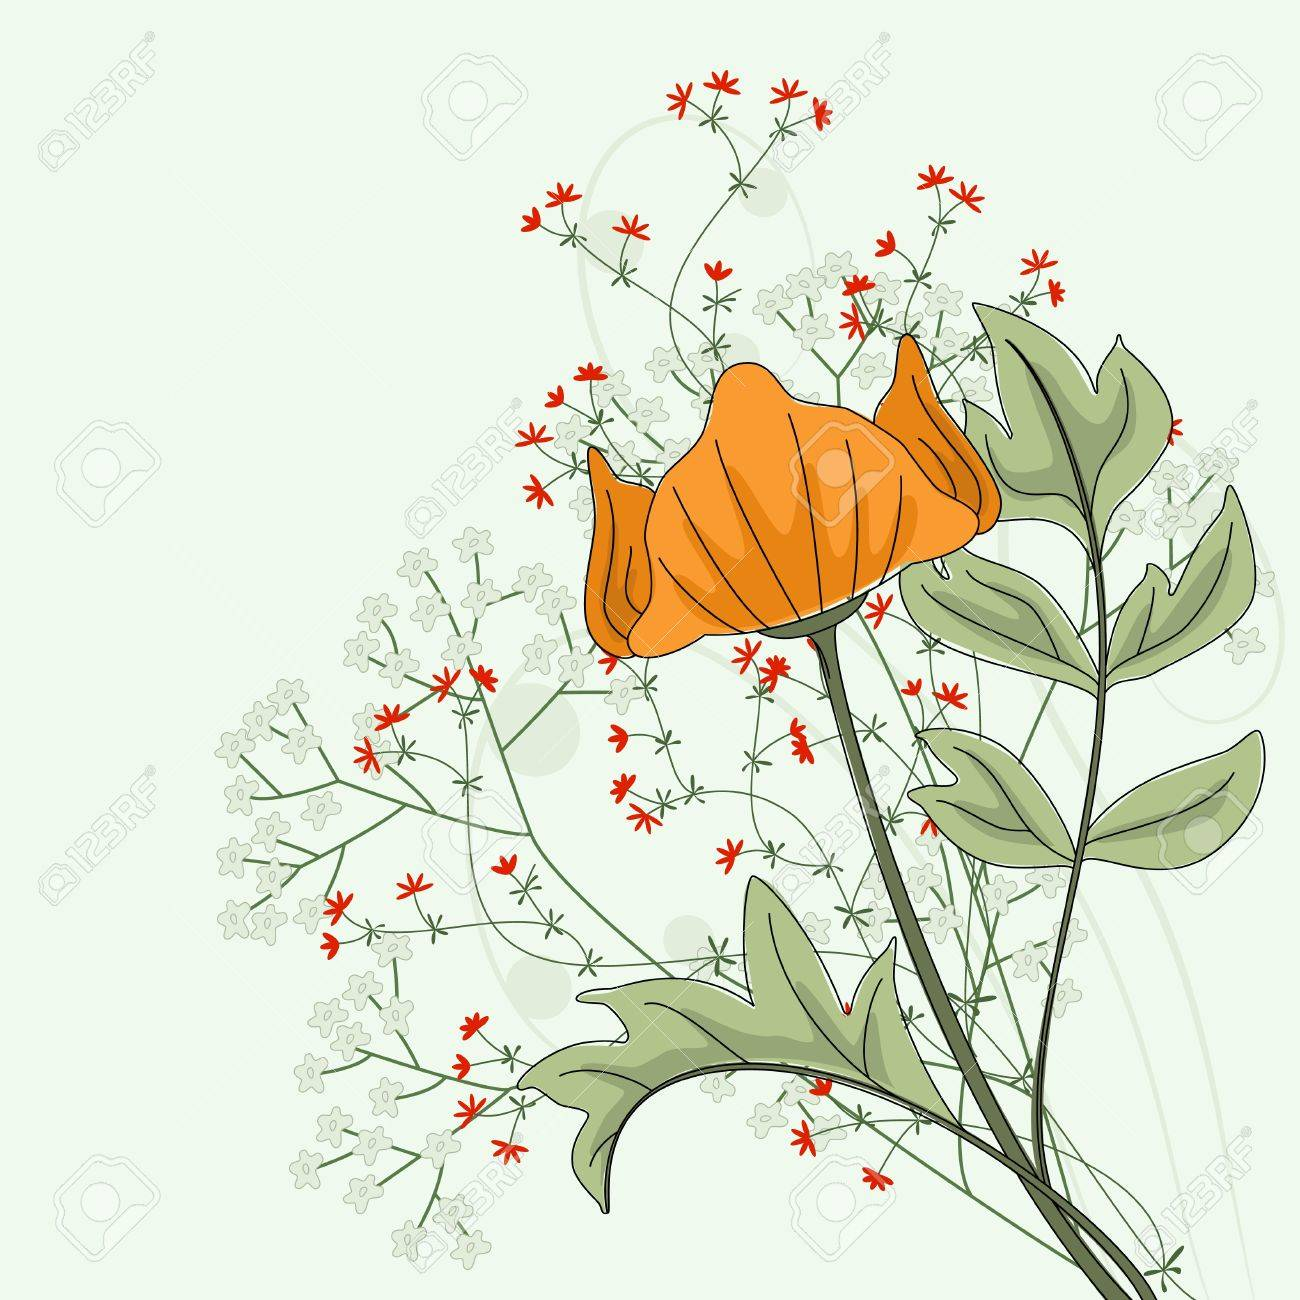 Hand drawn poppy with fantasy flowers and plants. Stock Vector - 9327396